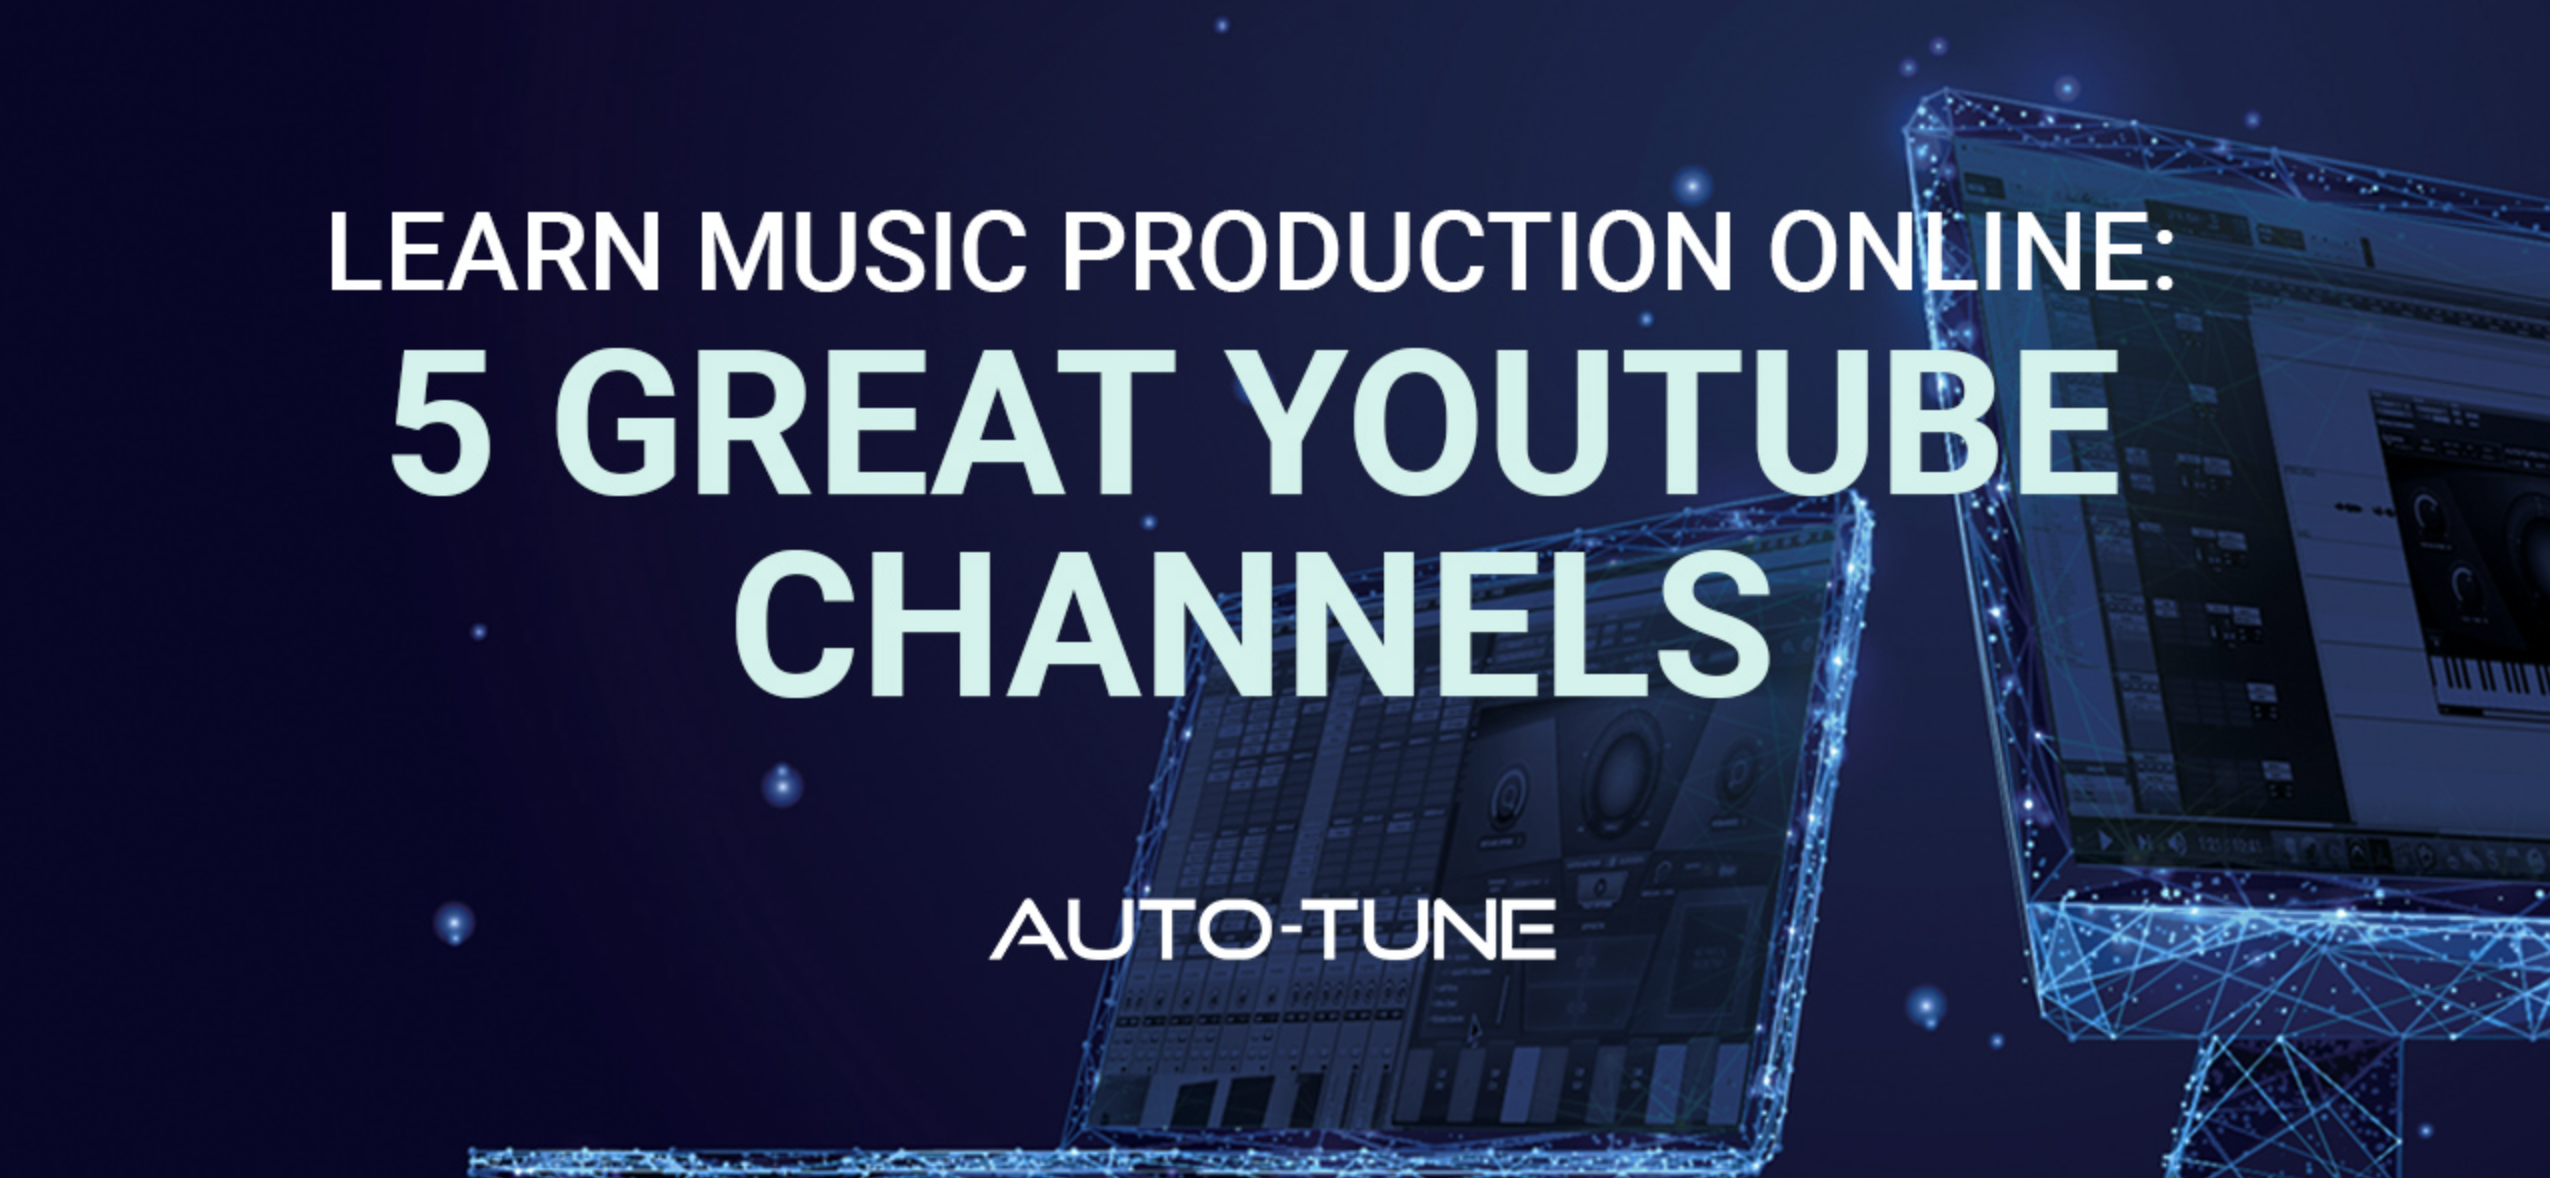 Learn Music Production Online 5 Great Youtube Channels